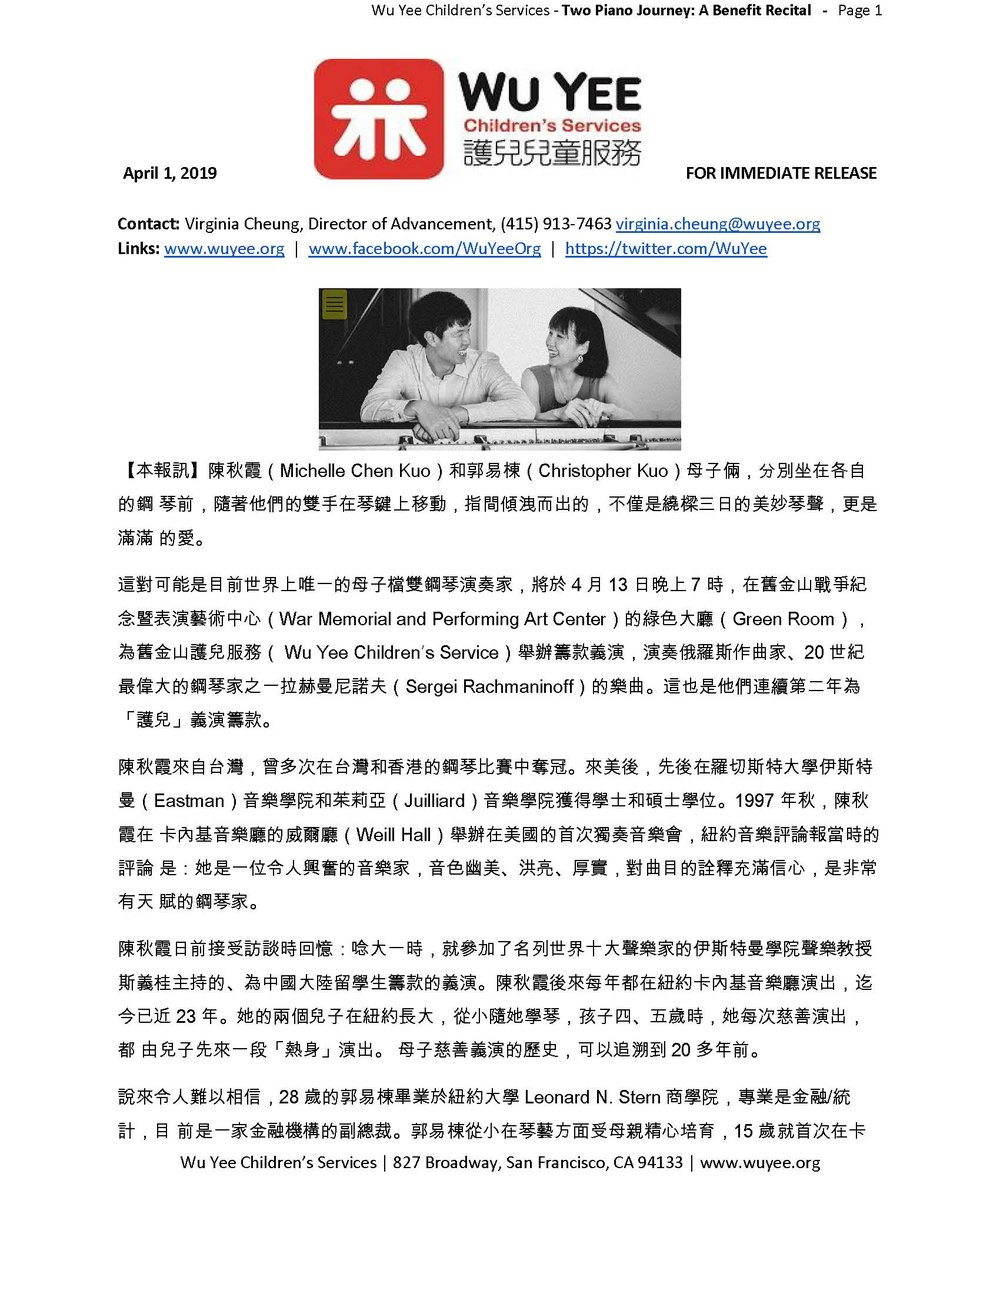 Wu Yee 2019 Piano Concert Press Release_Chinese (1)_Page_1.jpg